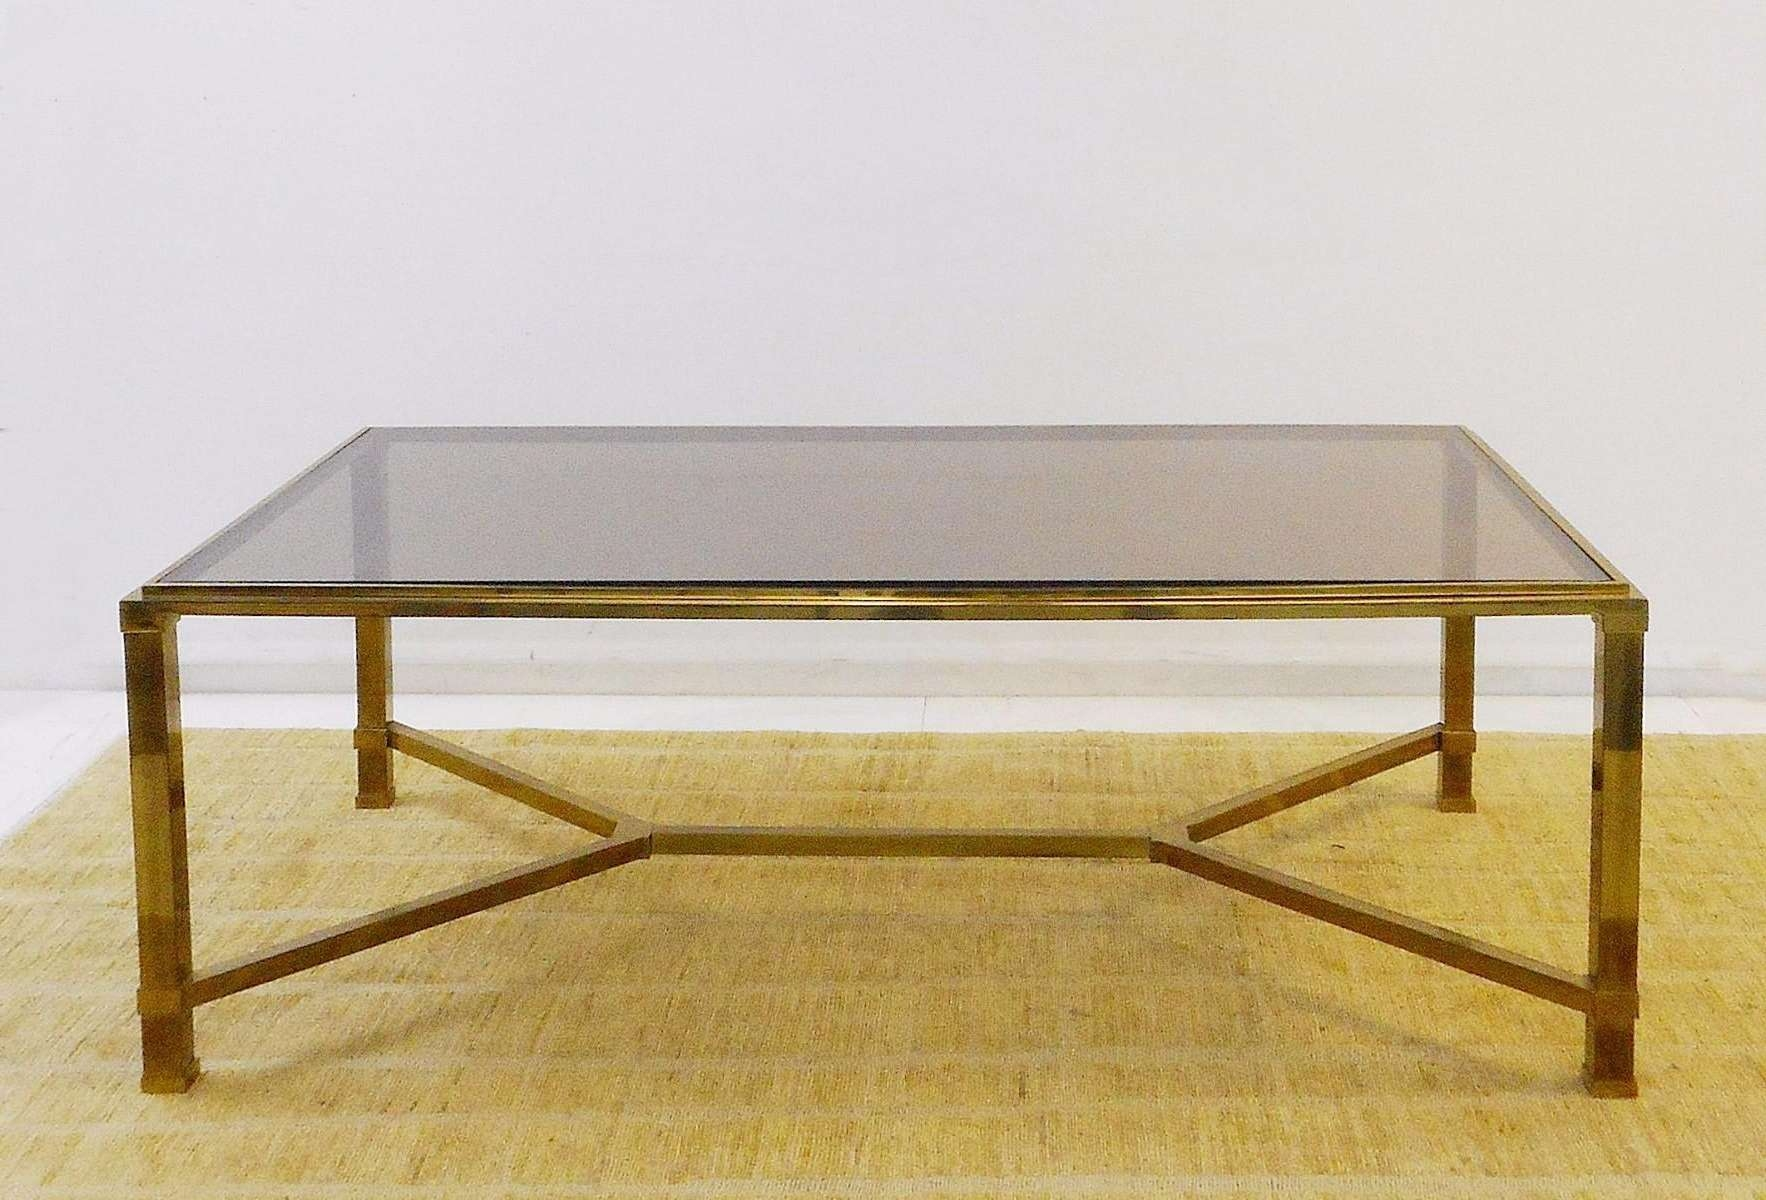 Fashionable Retro Smoked Glass Coffee Tables Regarding Vintage Brass & Smoked Glass Coffee Table For Sale At Pamono (View 9 of 20)